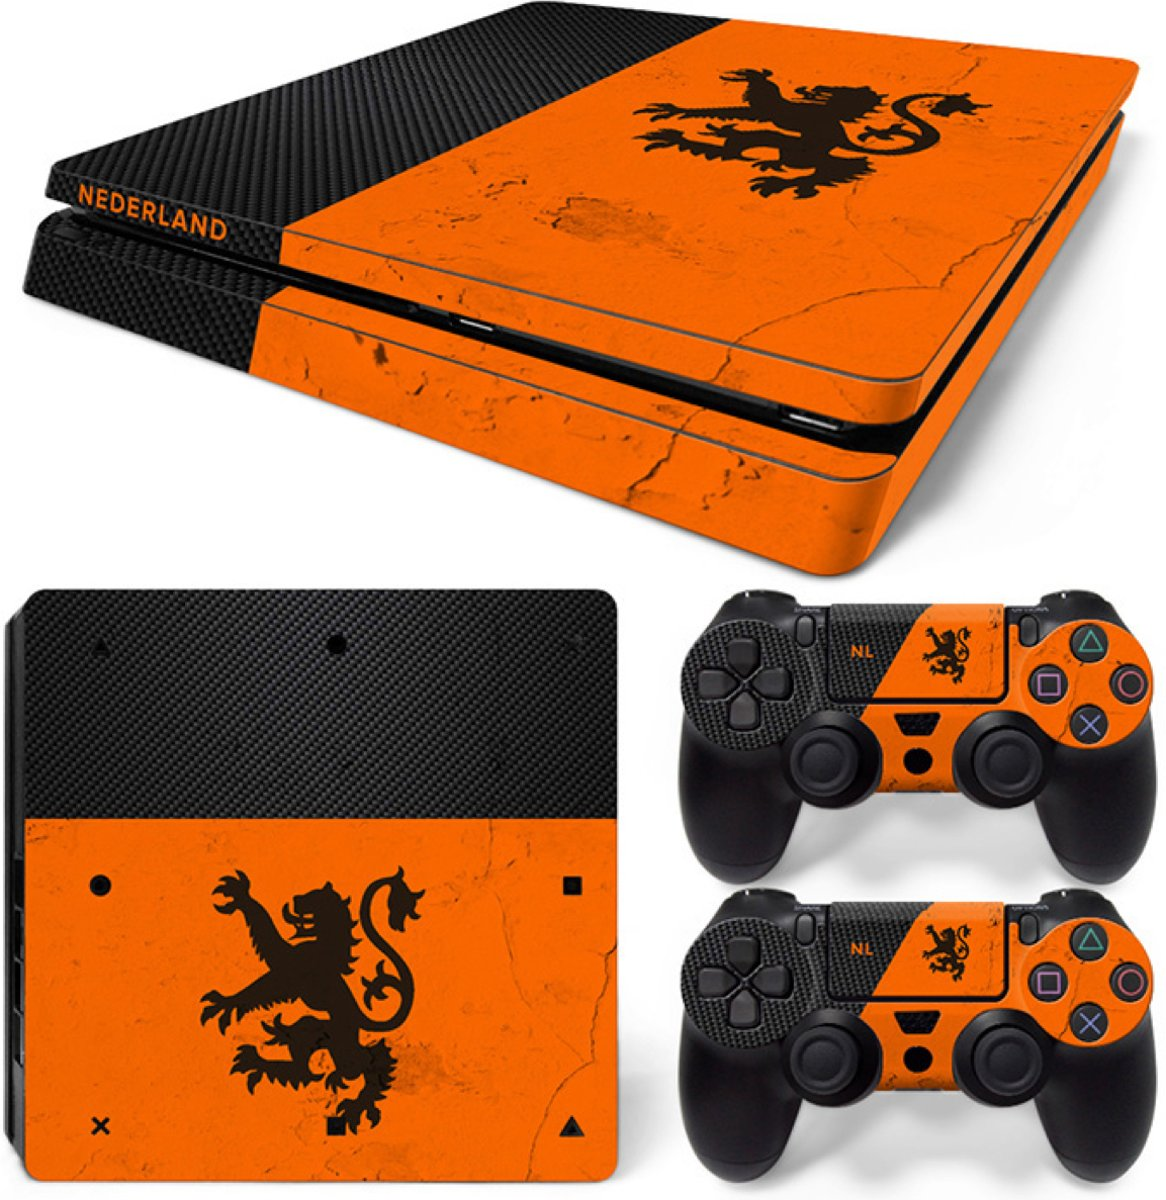 Nederland - PS4 Slim Console Skins PlayStation Stickers